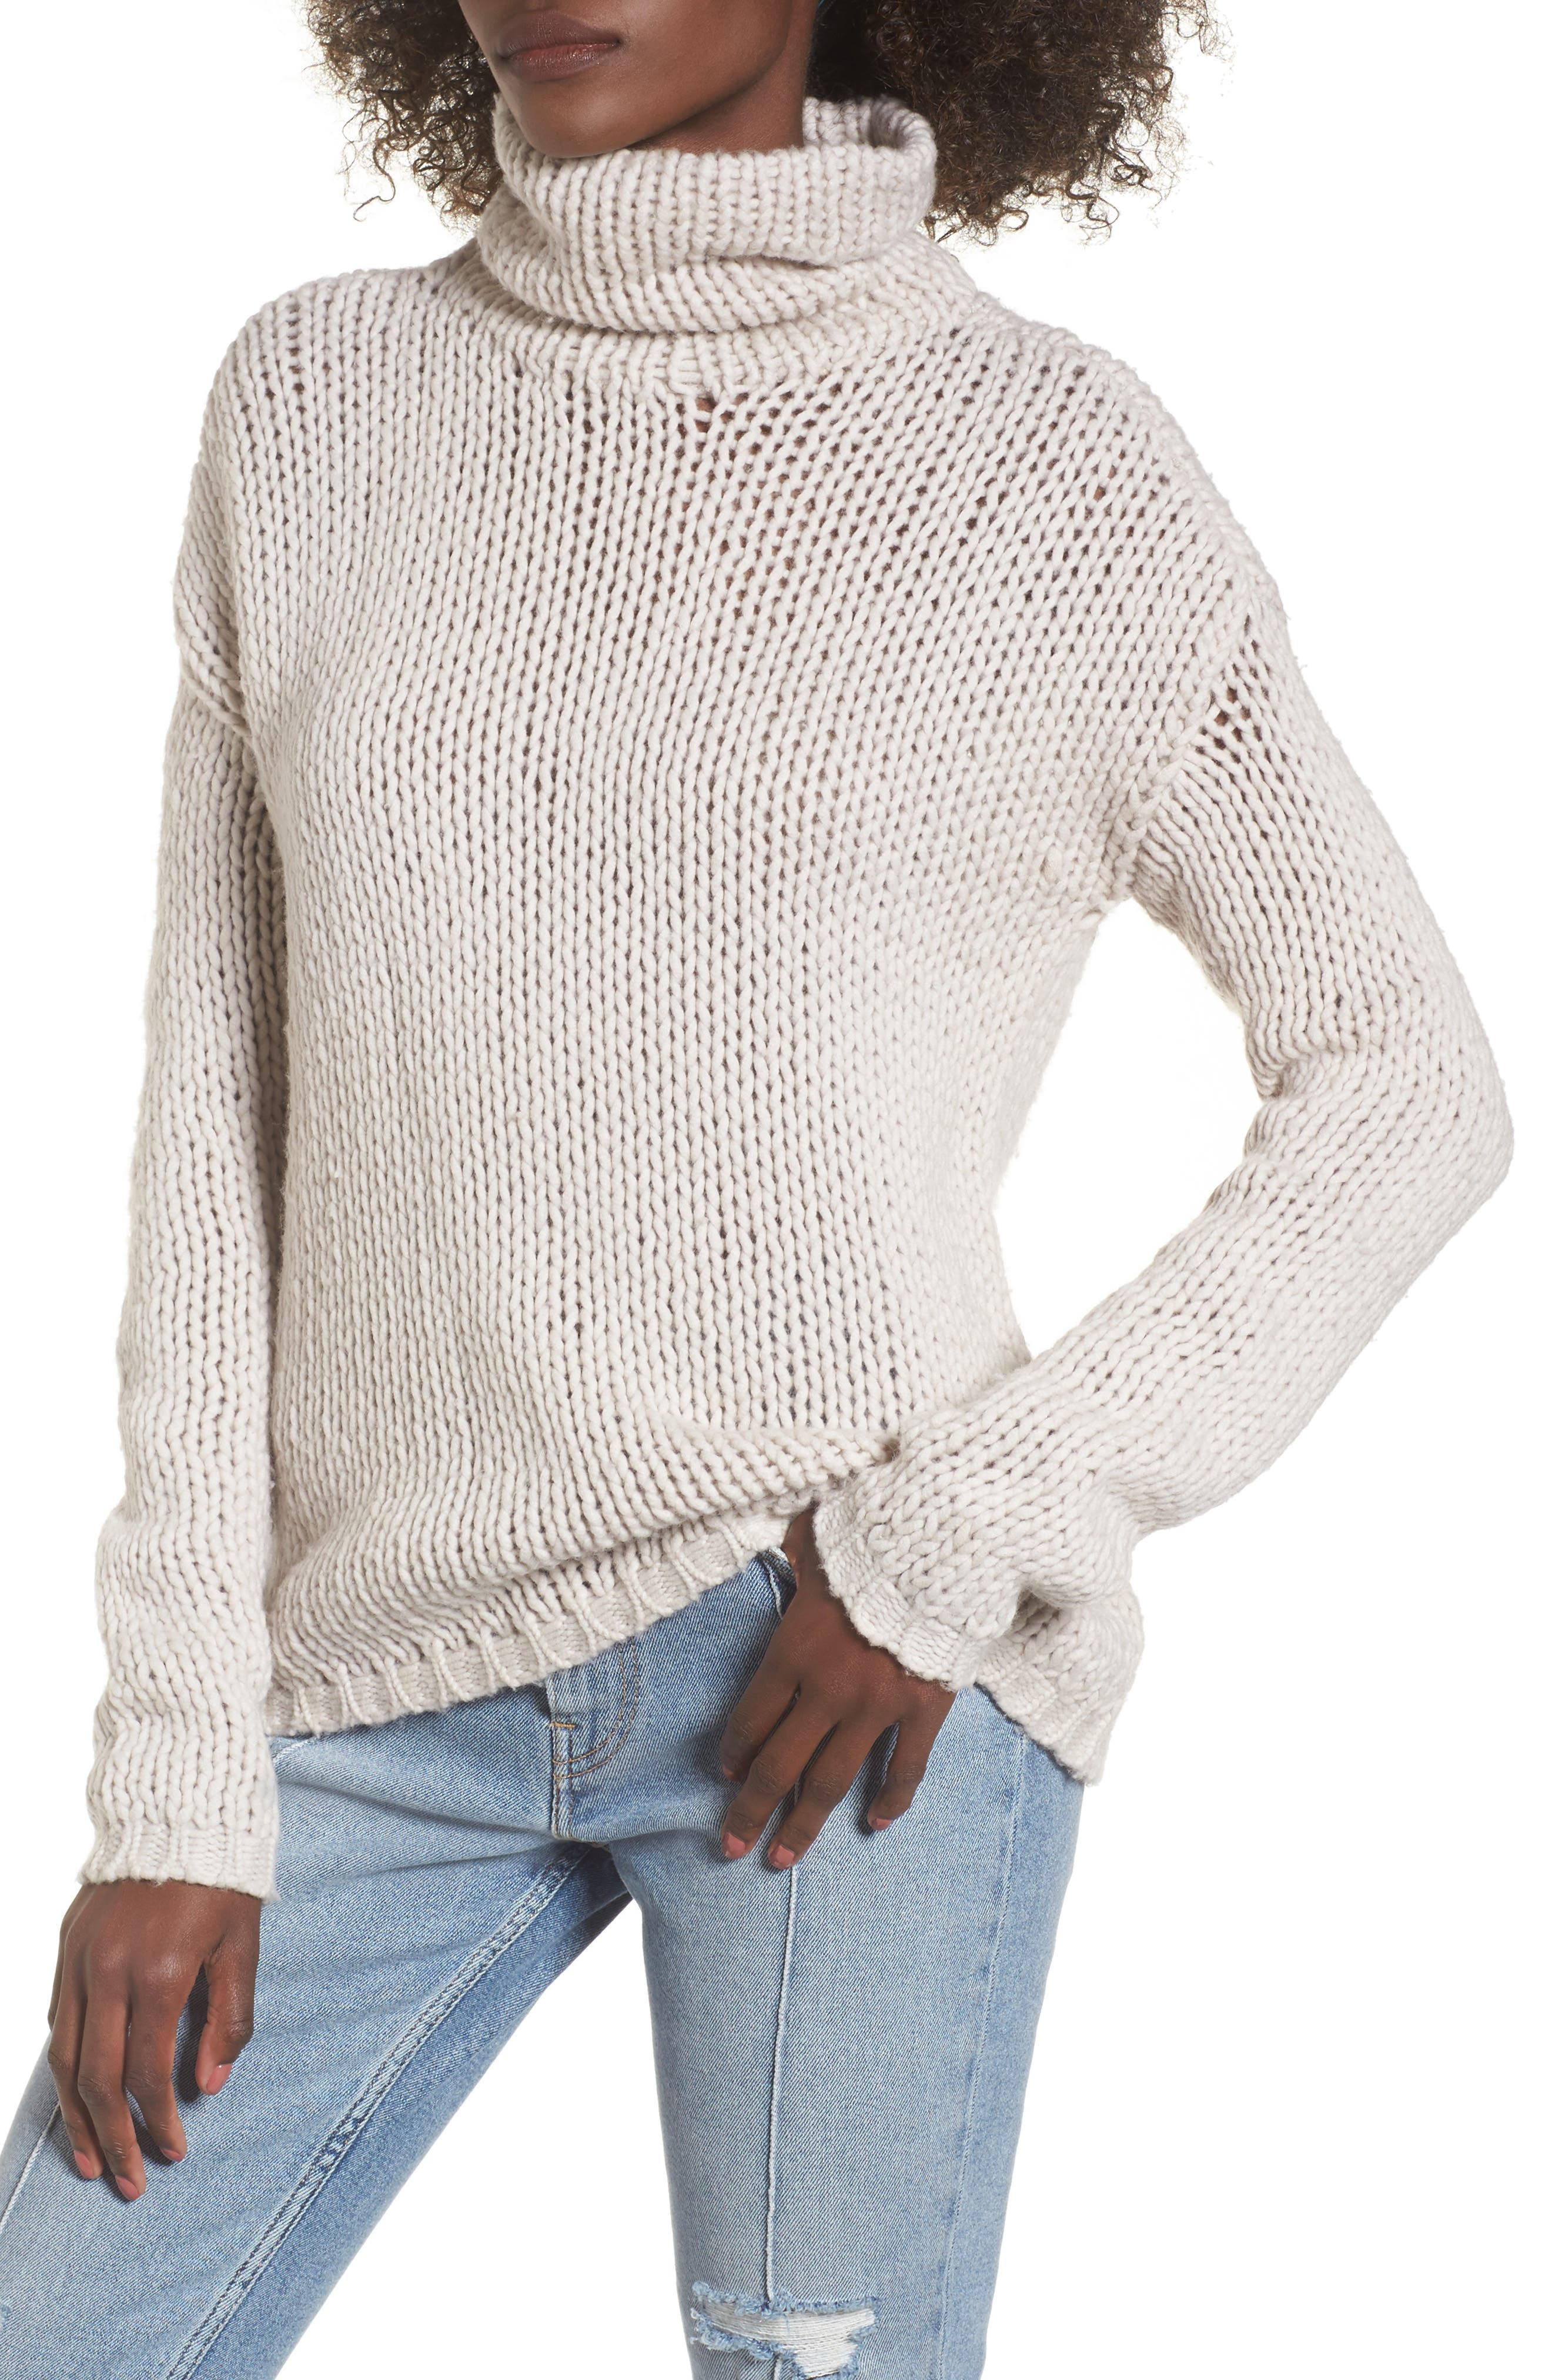 Hawken Turtleneck Sweater,                         Main,                         color, Pearl